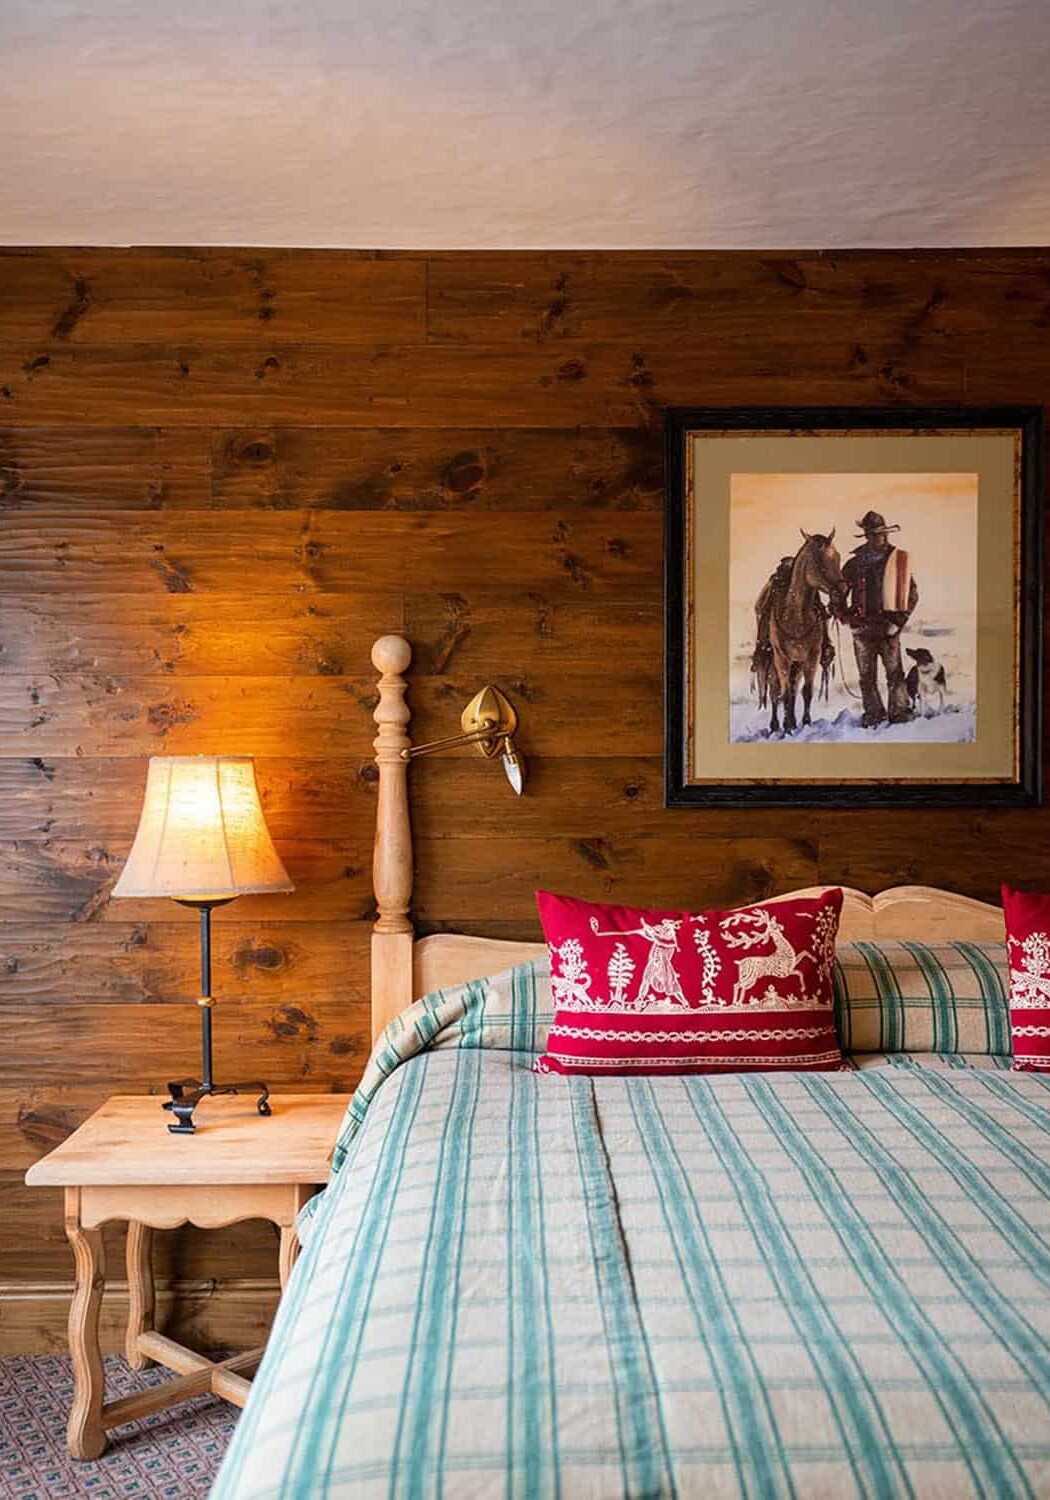 Hotel bed with carpeted floor, wood-paneled wall with art, and nightstand with small lamp